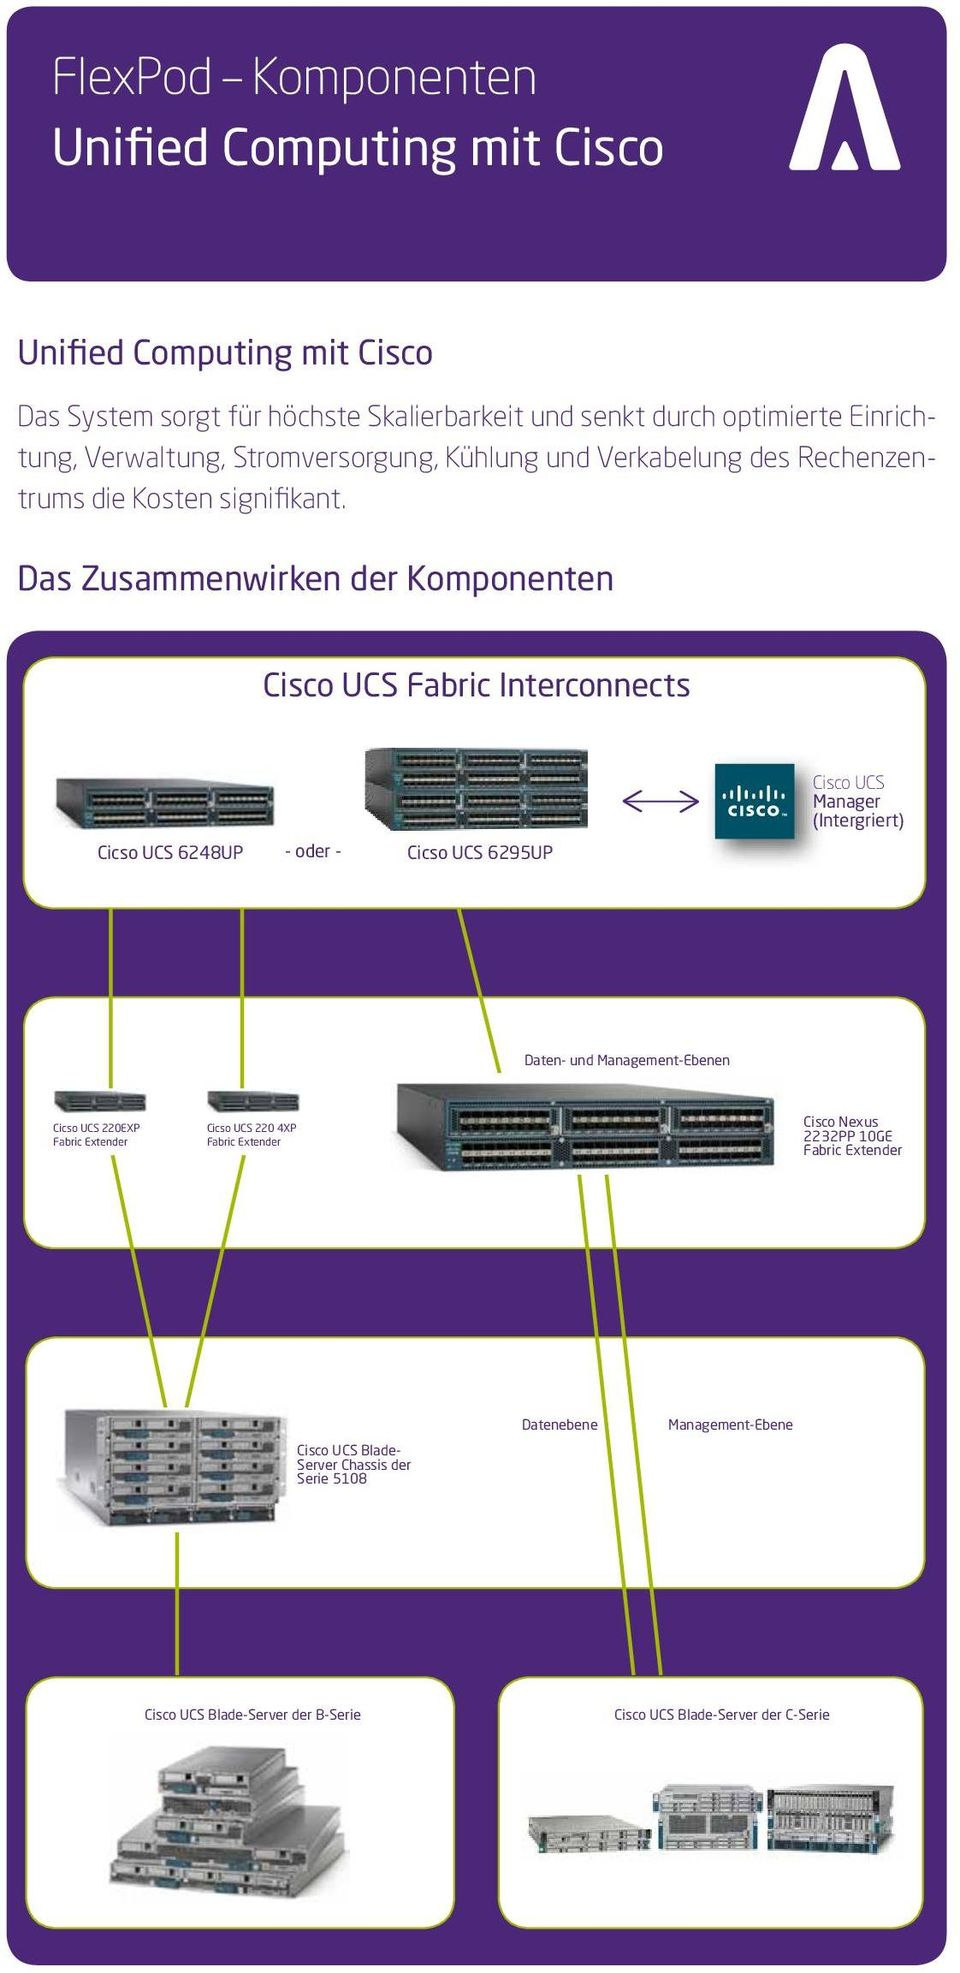 Das Zusammenwirken der Komponenten Cisco UCS Fabric Interconnects Komponenten des Cisco Unified Computing System Cicso UCS 6248UP - oder - Cicso UCS 6295UP Cisco UCS Manager